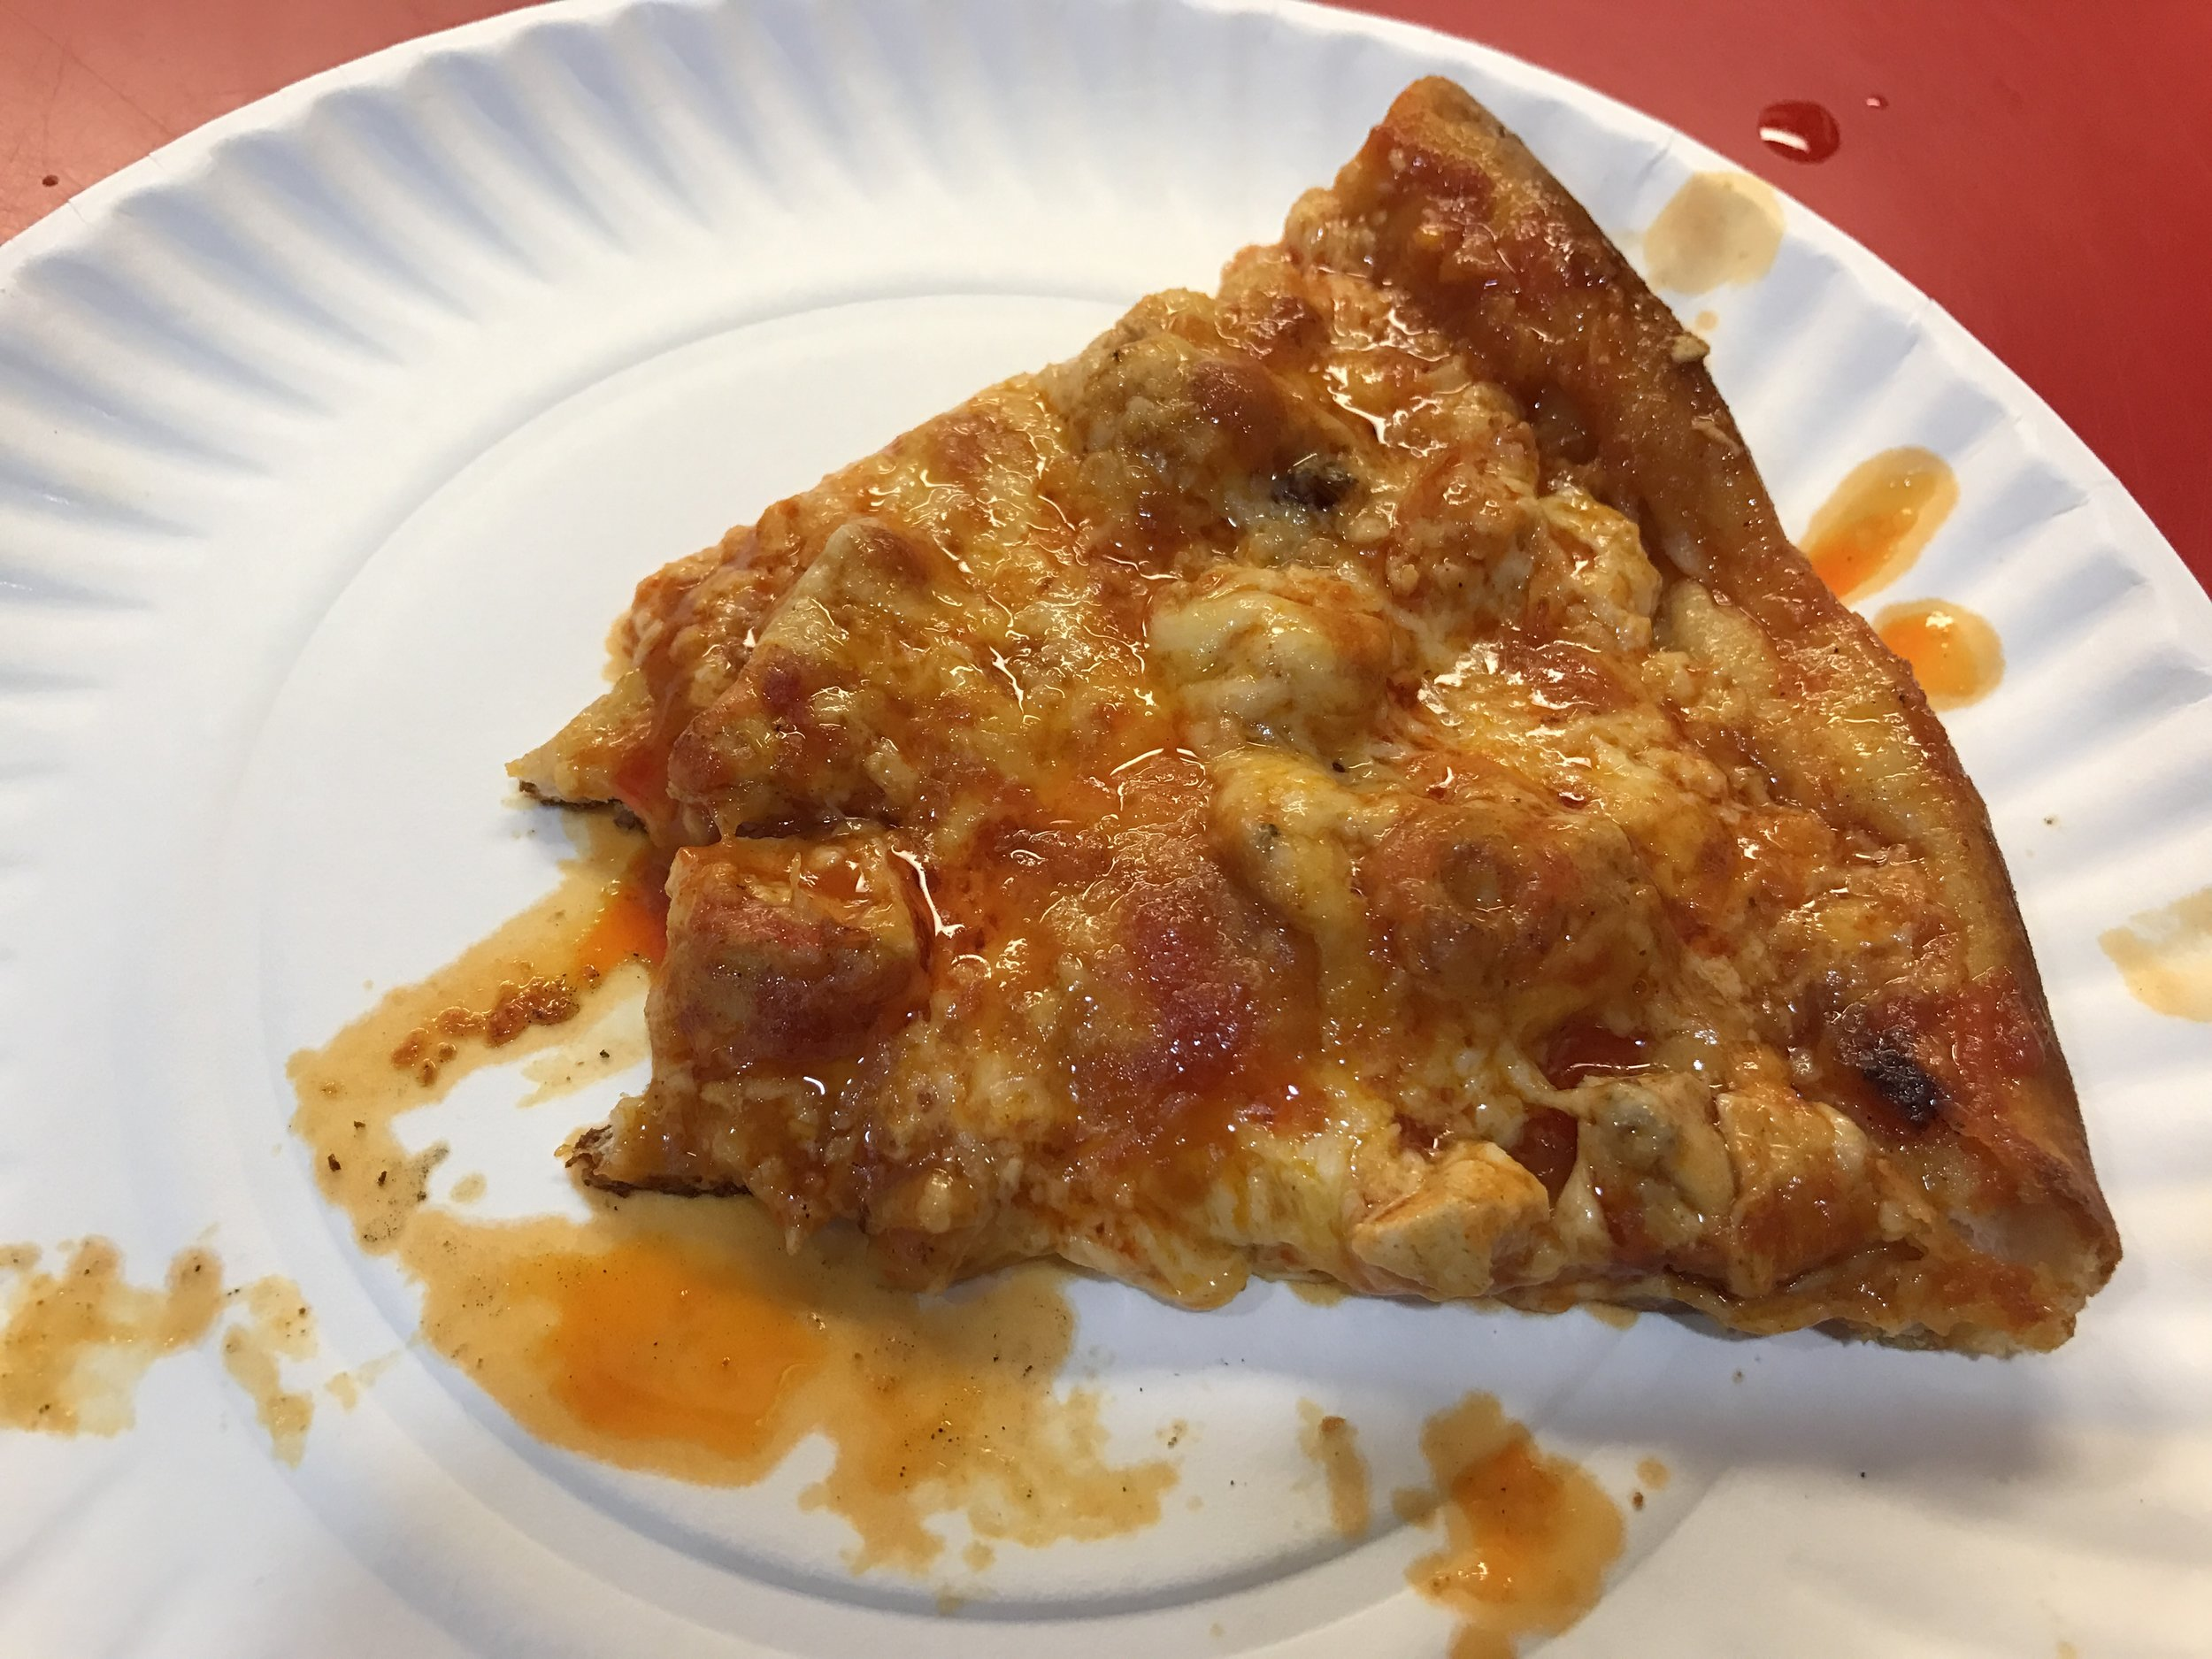 Here is a simple, sloppy slice of Graziano's buffalo chicken pizza.